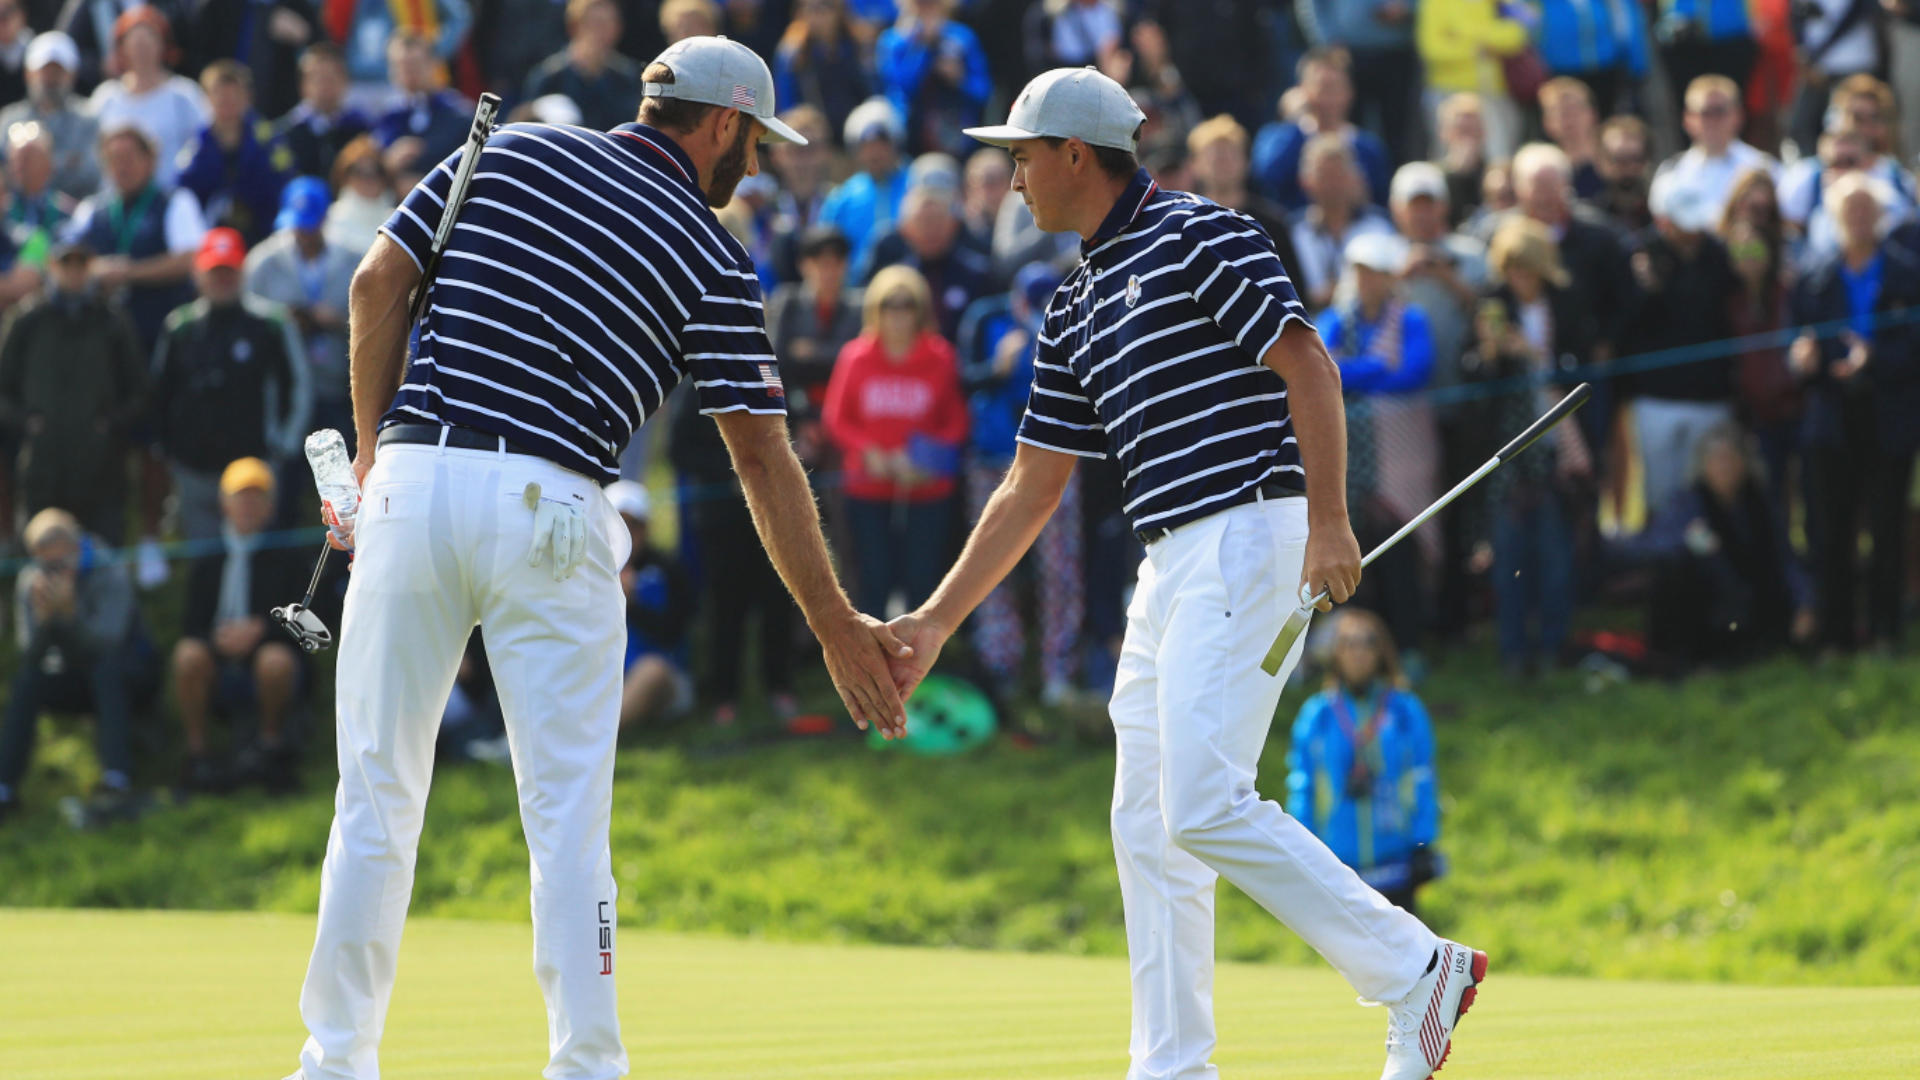 2018 Ryder Cup: Rickie Fowler, Dustin Johnson Come Up Big - CBSSports.com